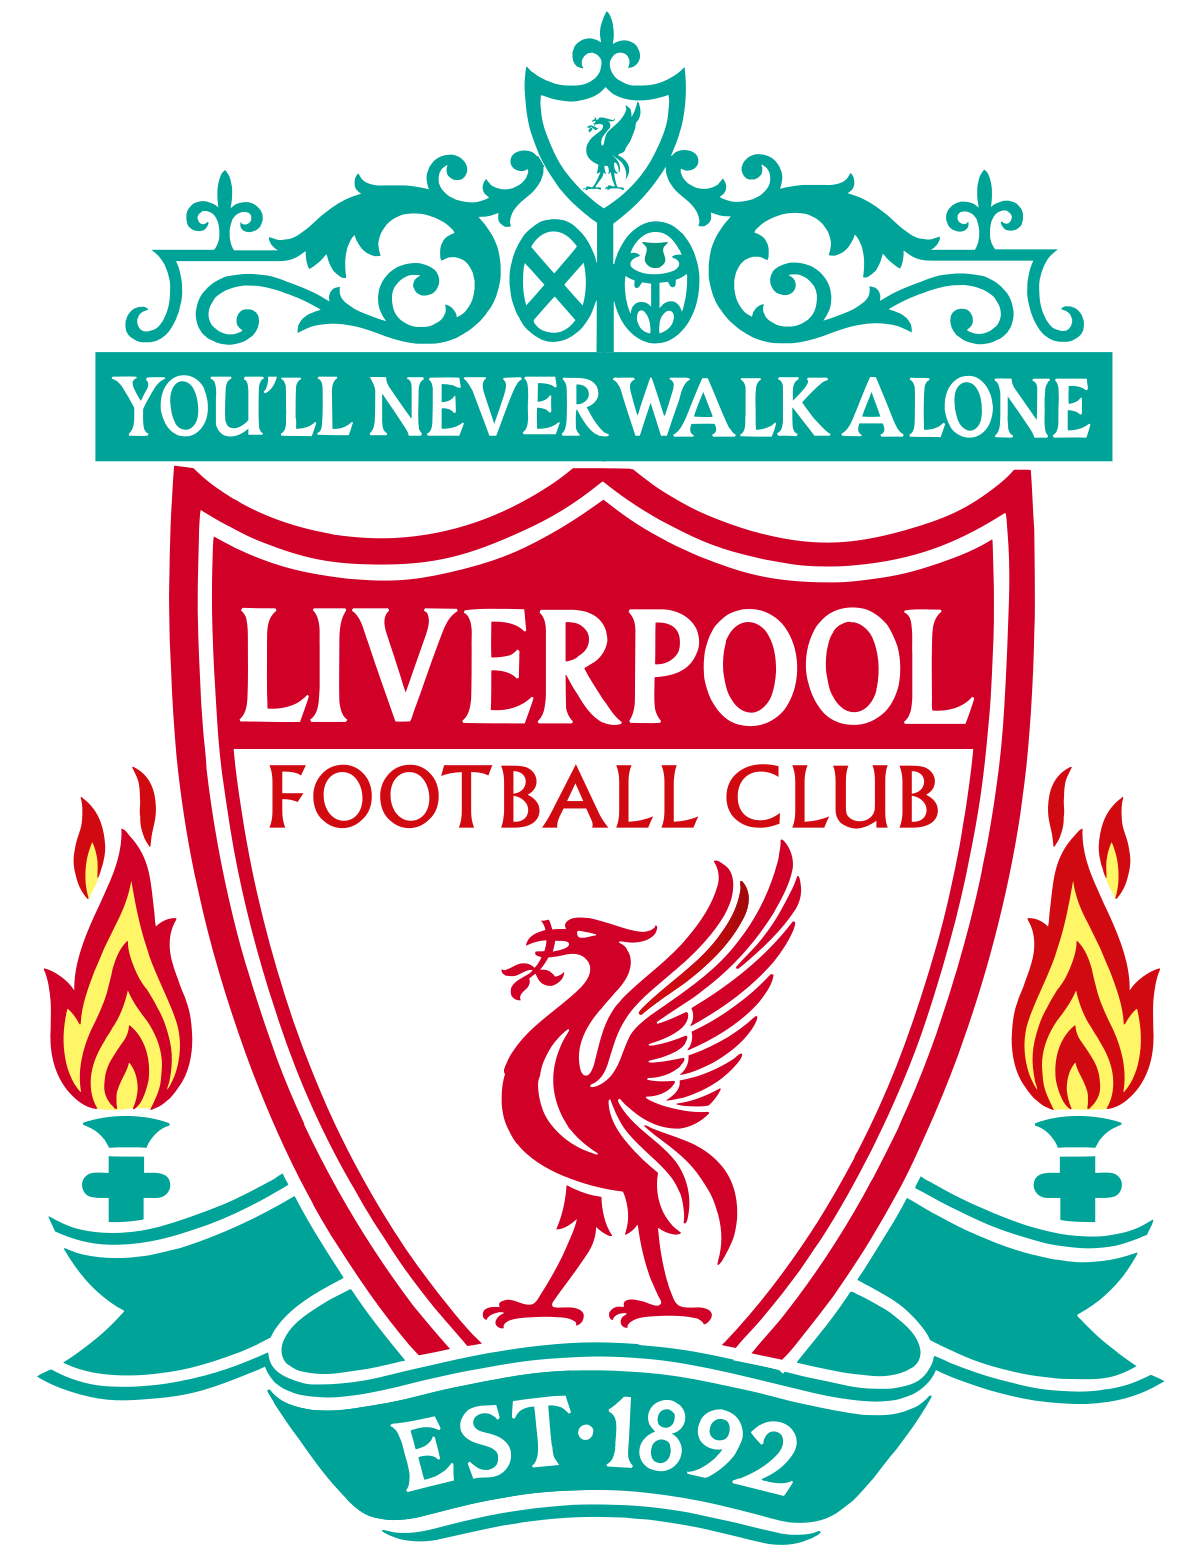 Liverpool Football Club - LFC